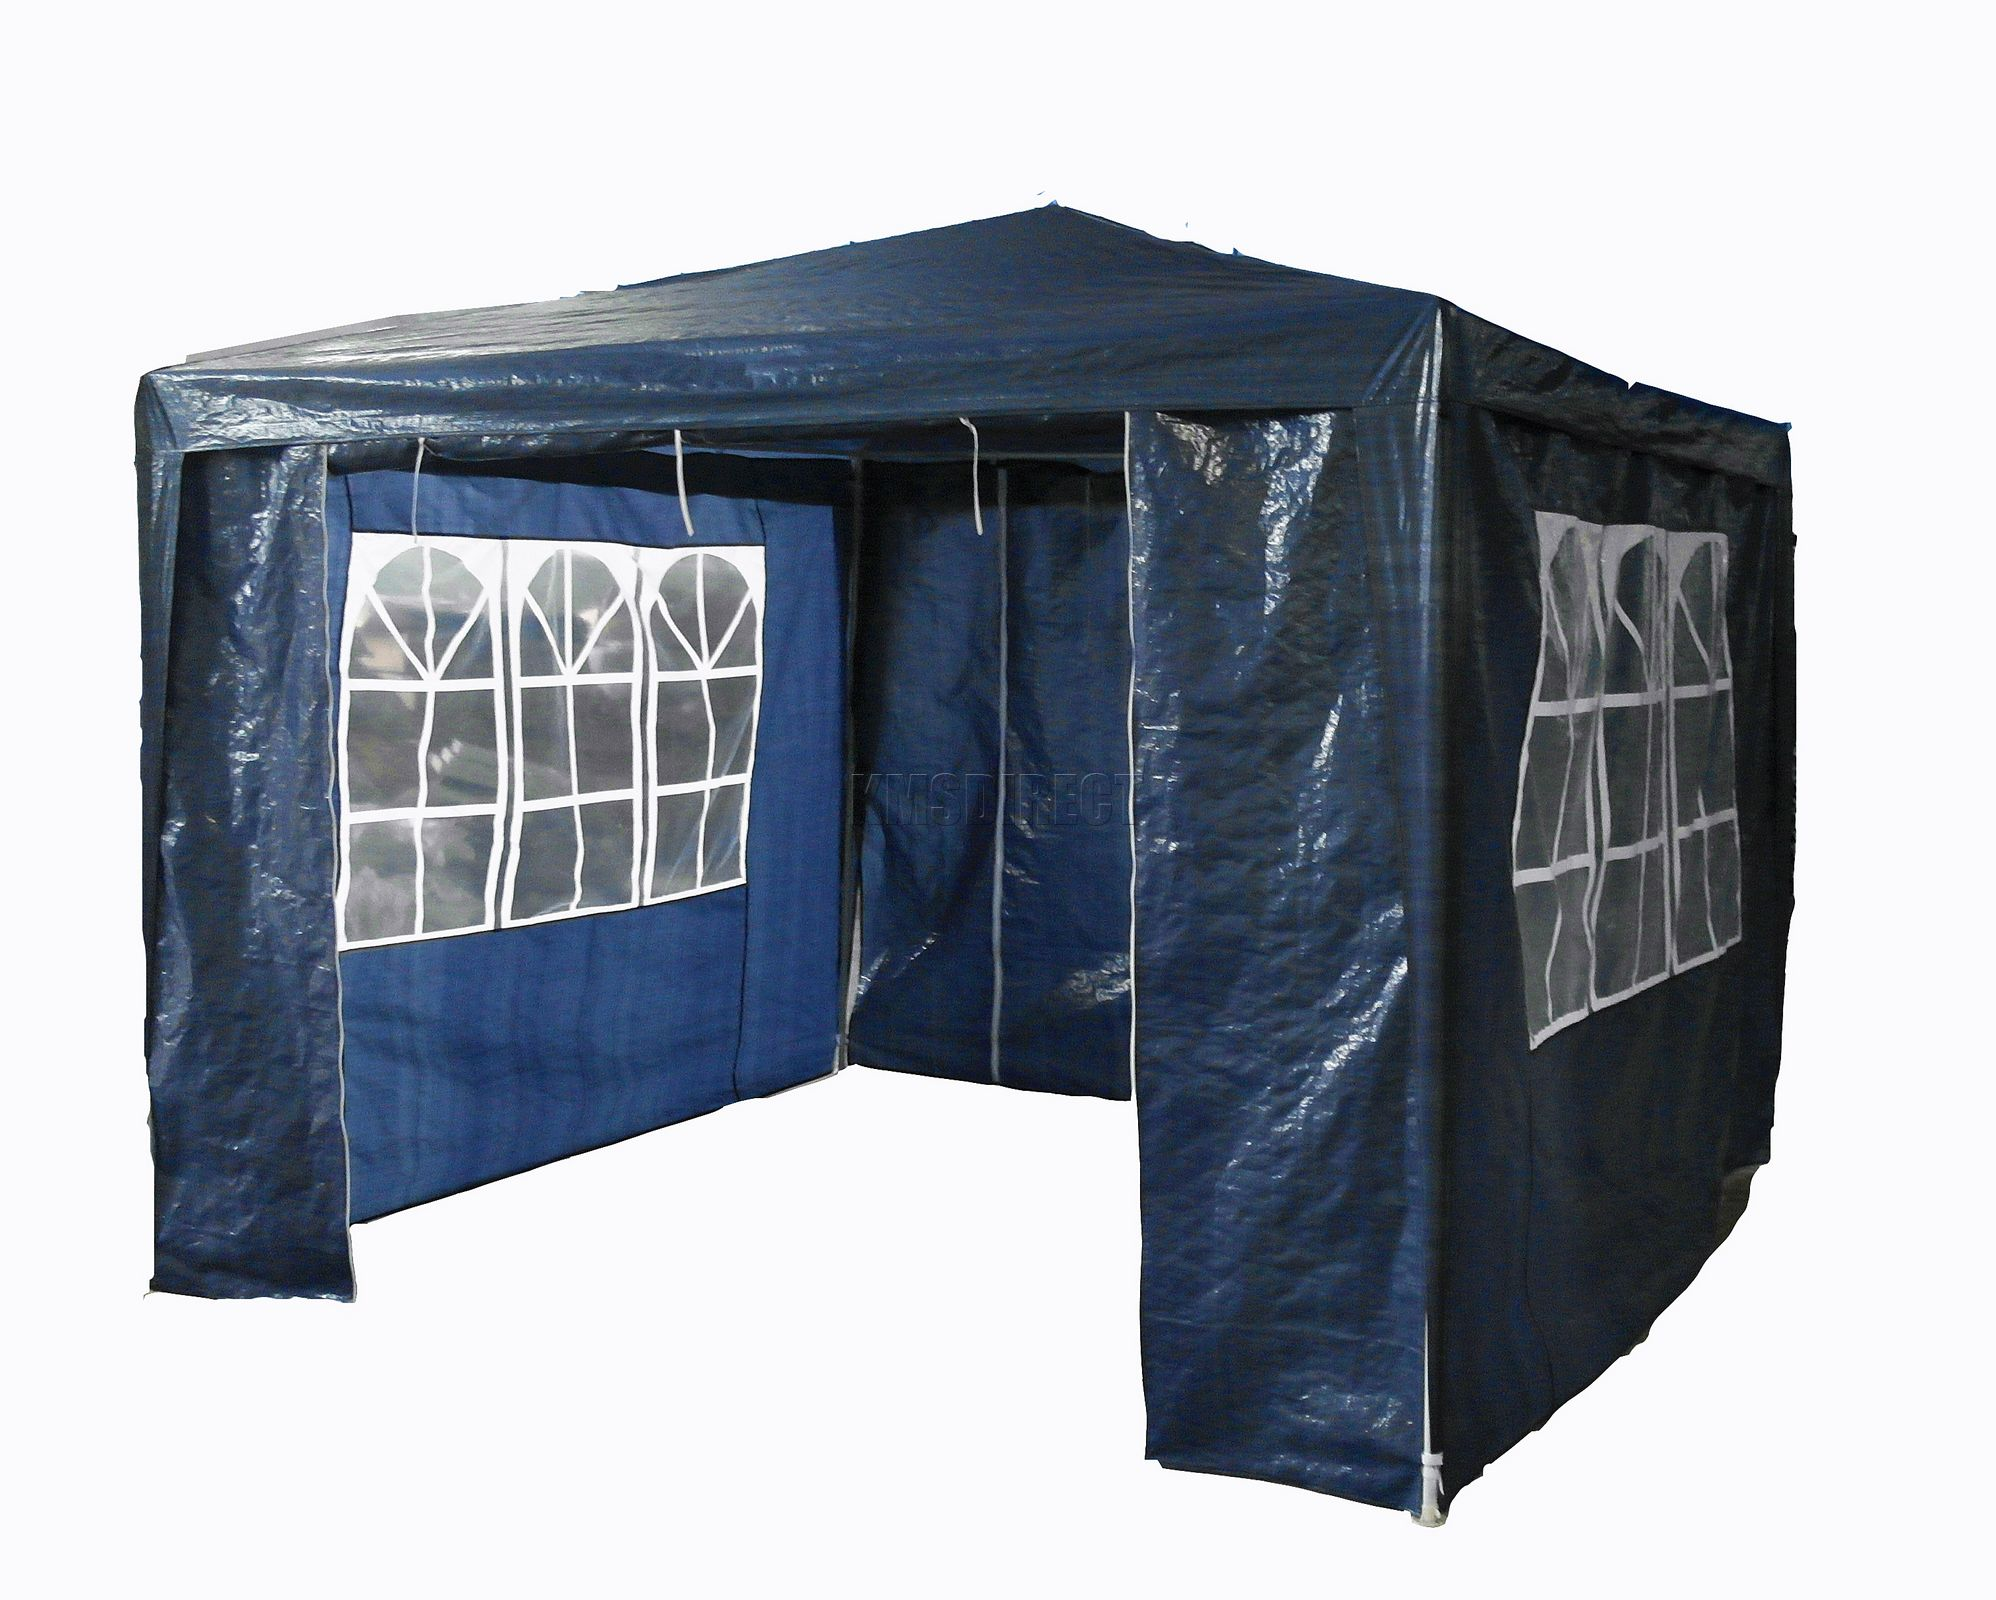 wasserdicht blau 3m x 3m outdoor garden pavillon partyzelt festzelt sonnensegel vordach. Black Bedroom Furniture Sets. Home Design Ideas